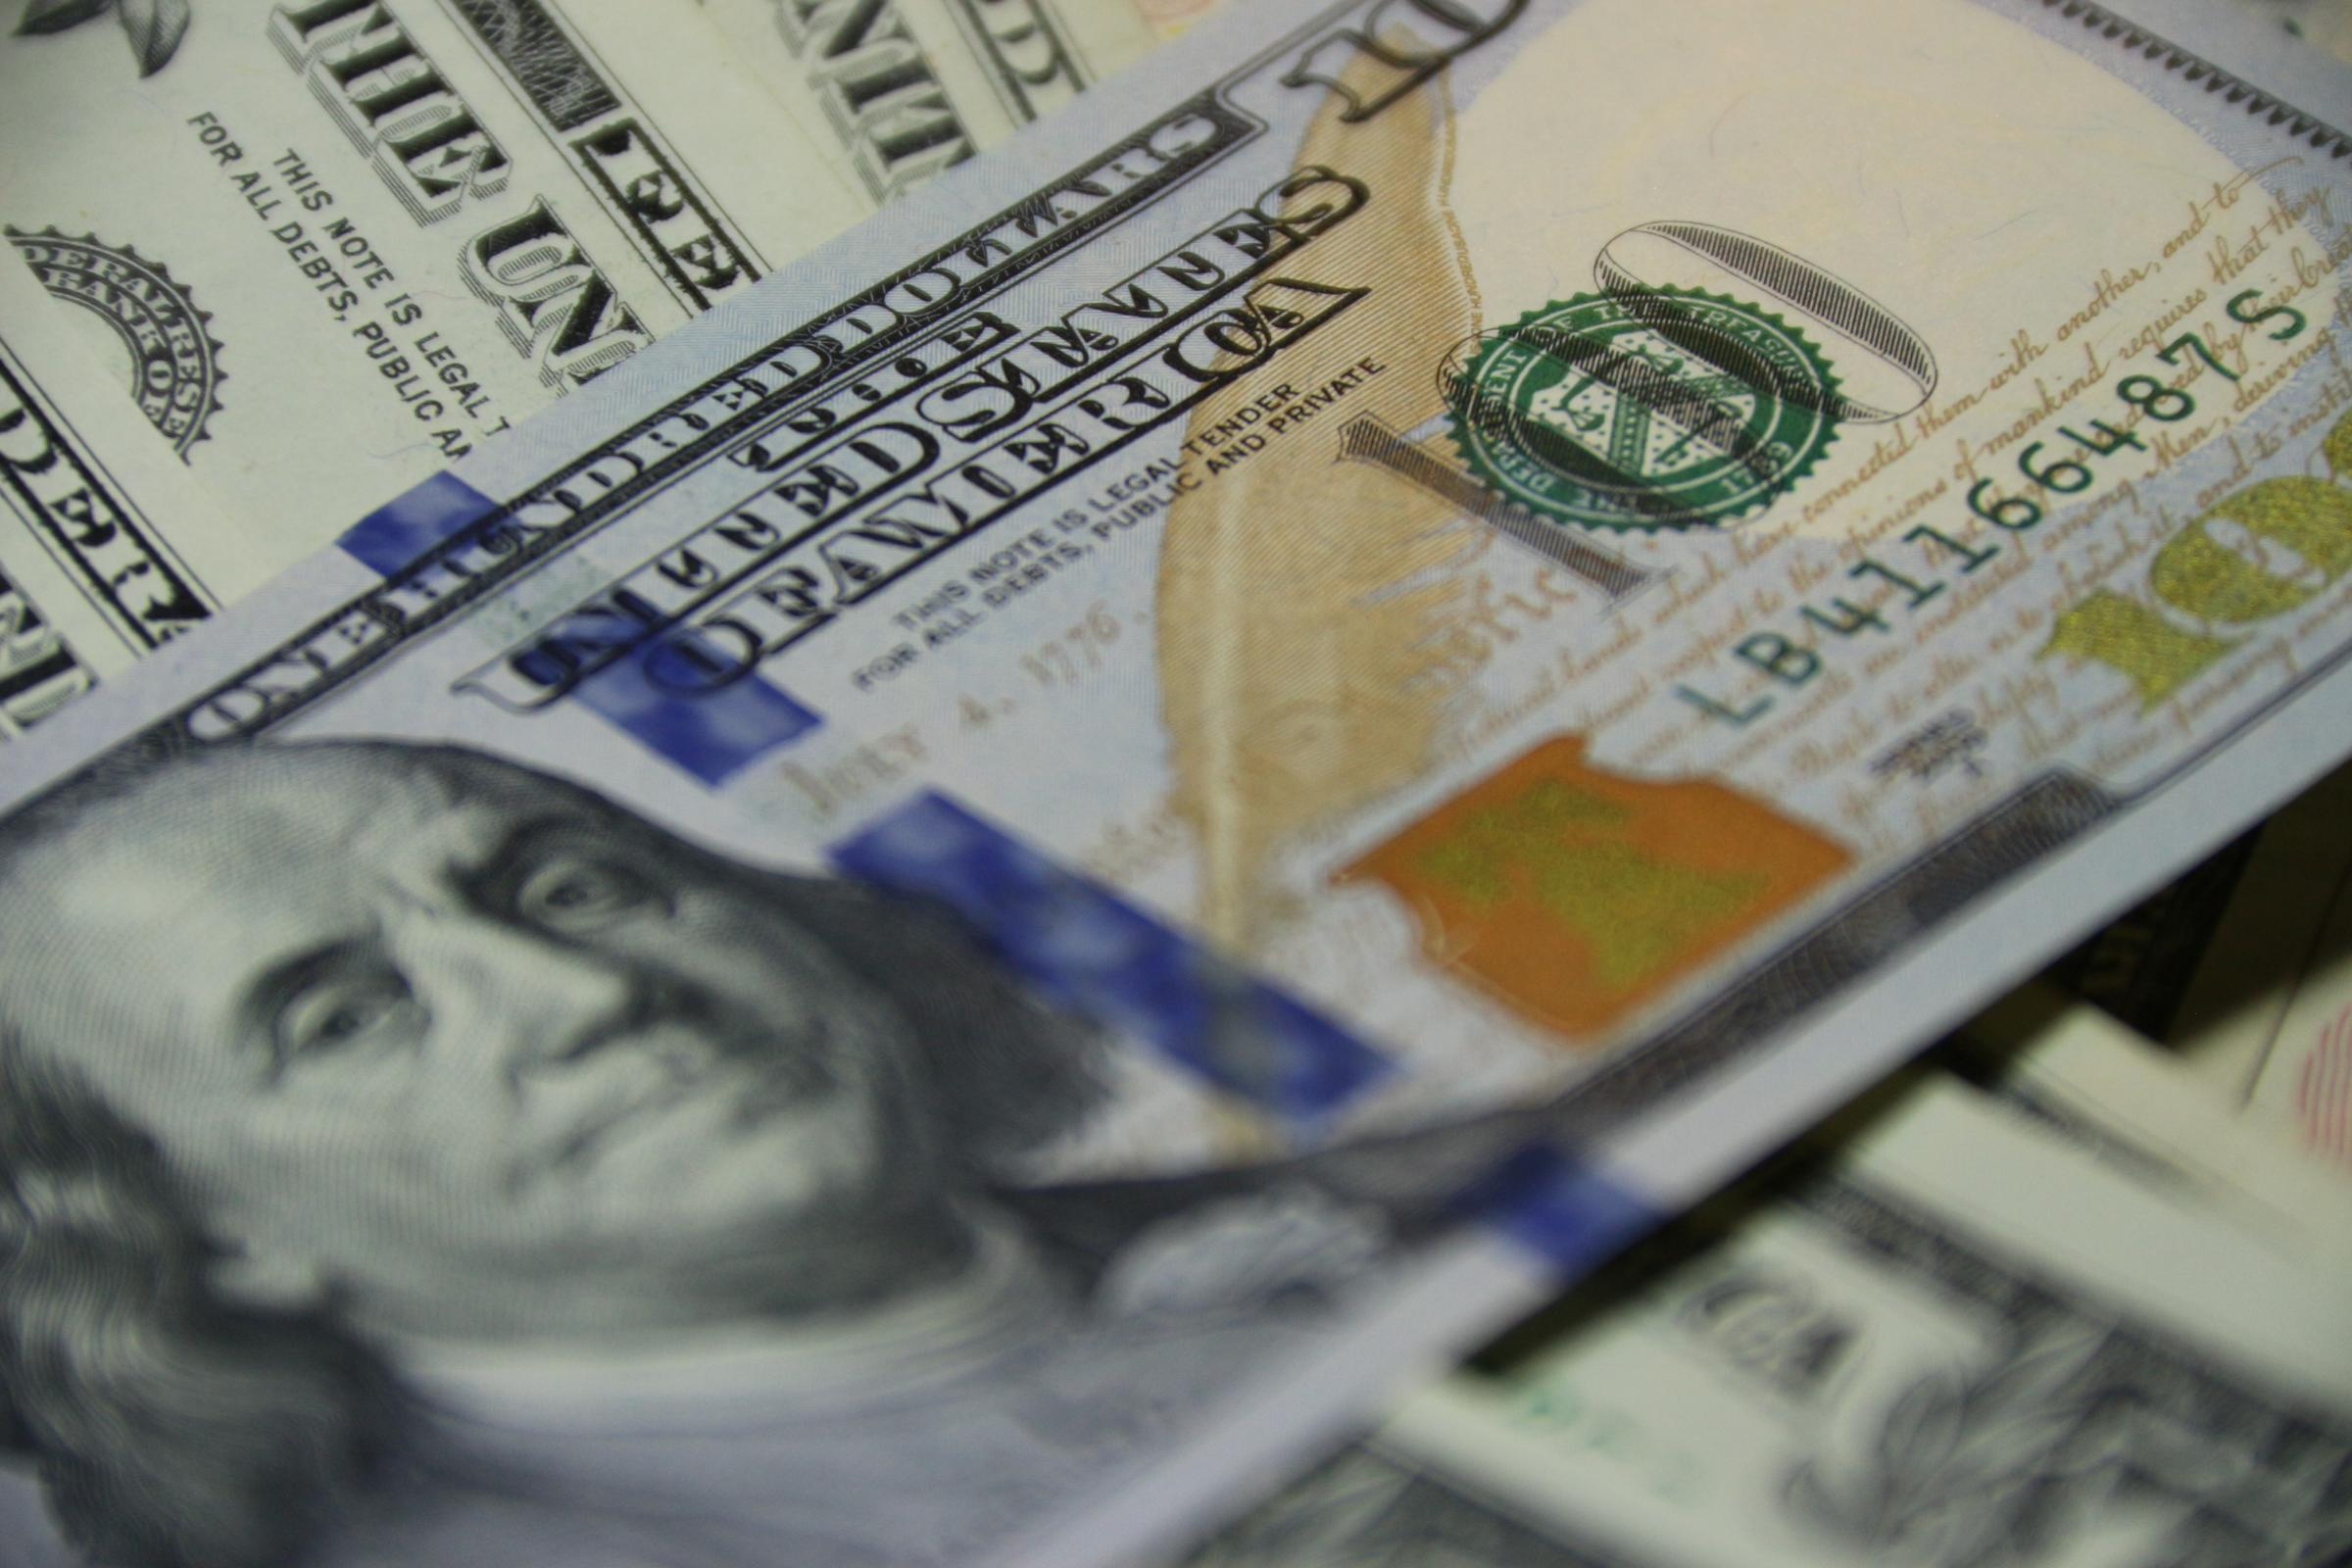 Iowa payday loans online image 4